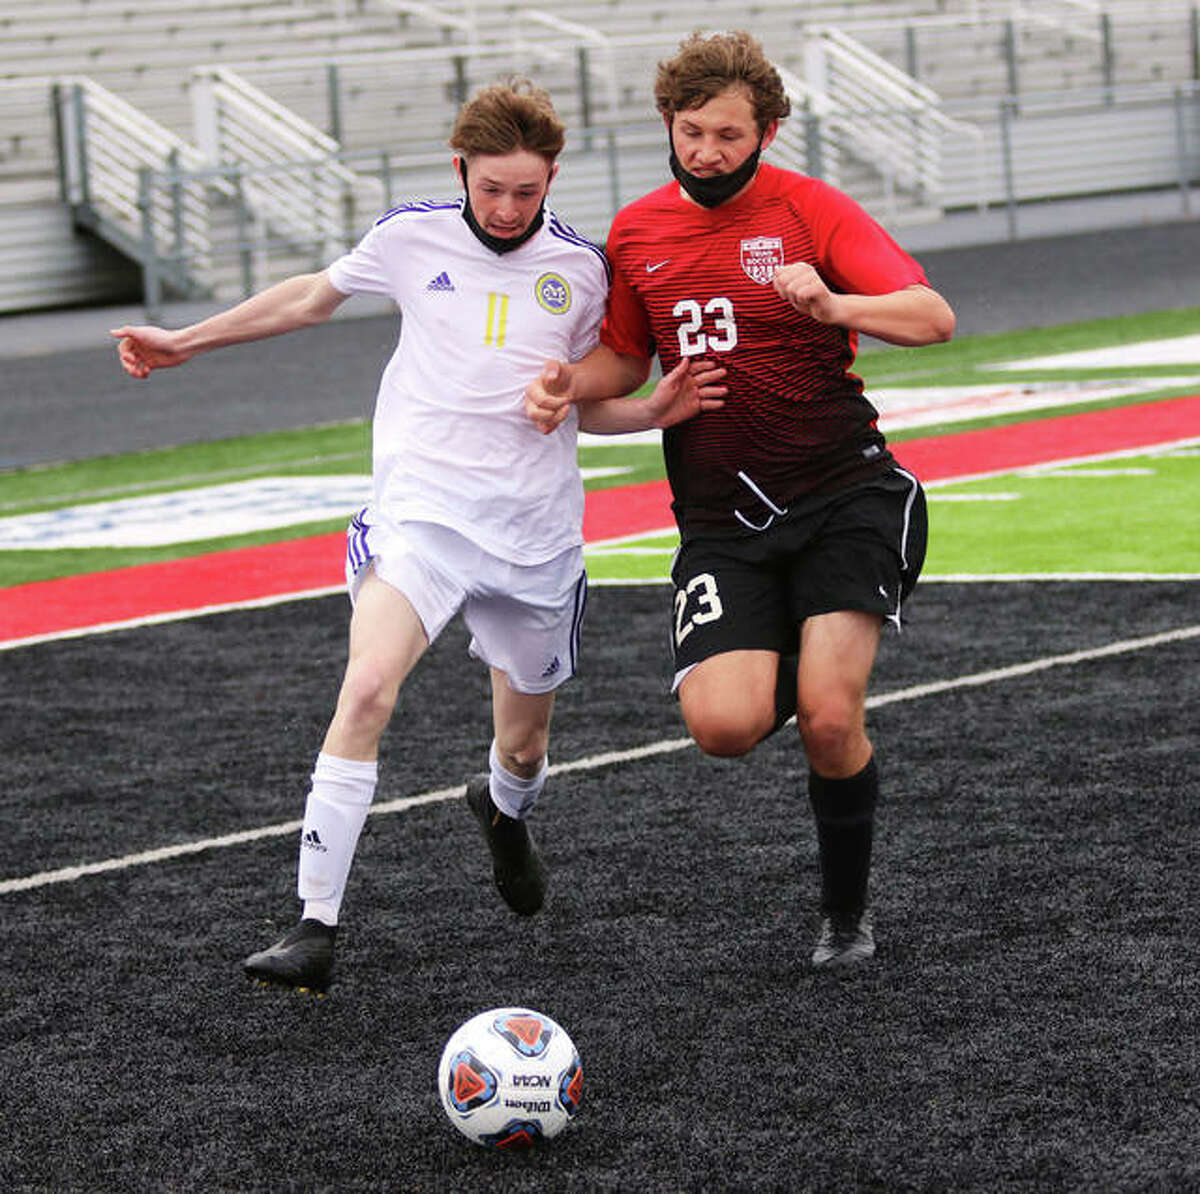 CM's Zach Depping (left) is unable to get past Triad's Lee Beeman and keep the ball from rolling past the end line on Triad' side of the field in the first half Thursday in Troy.